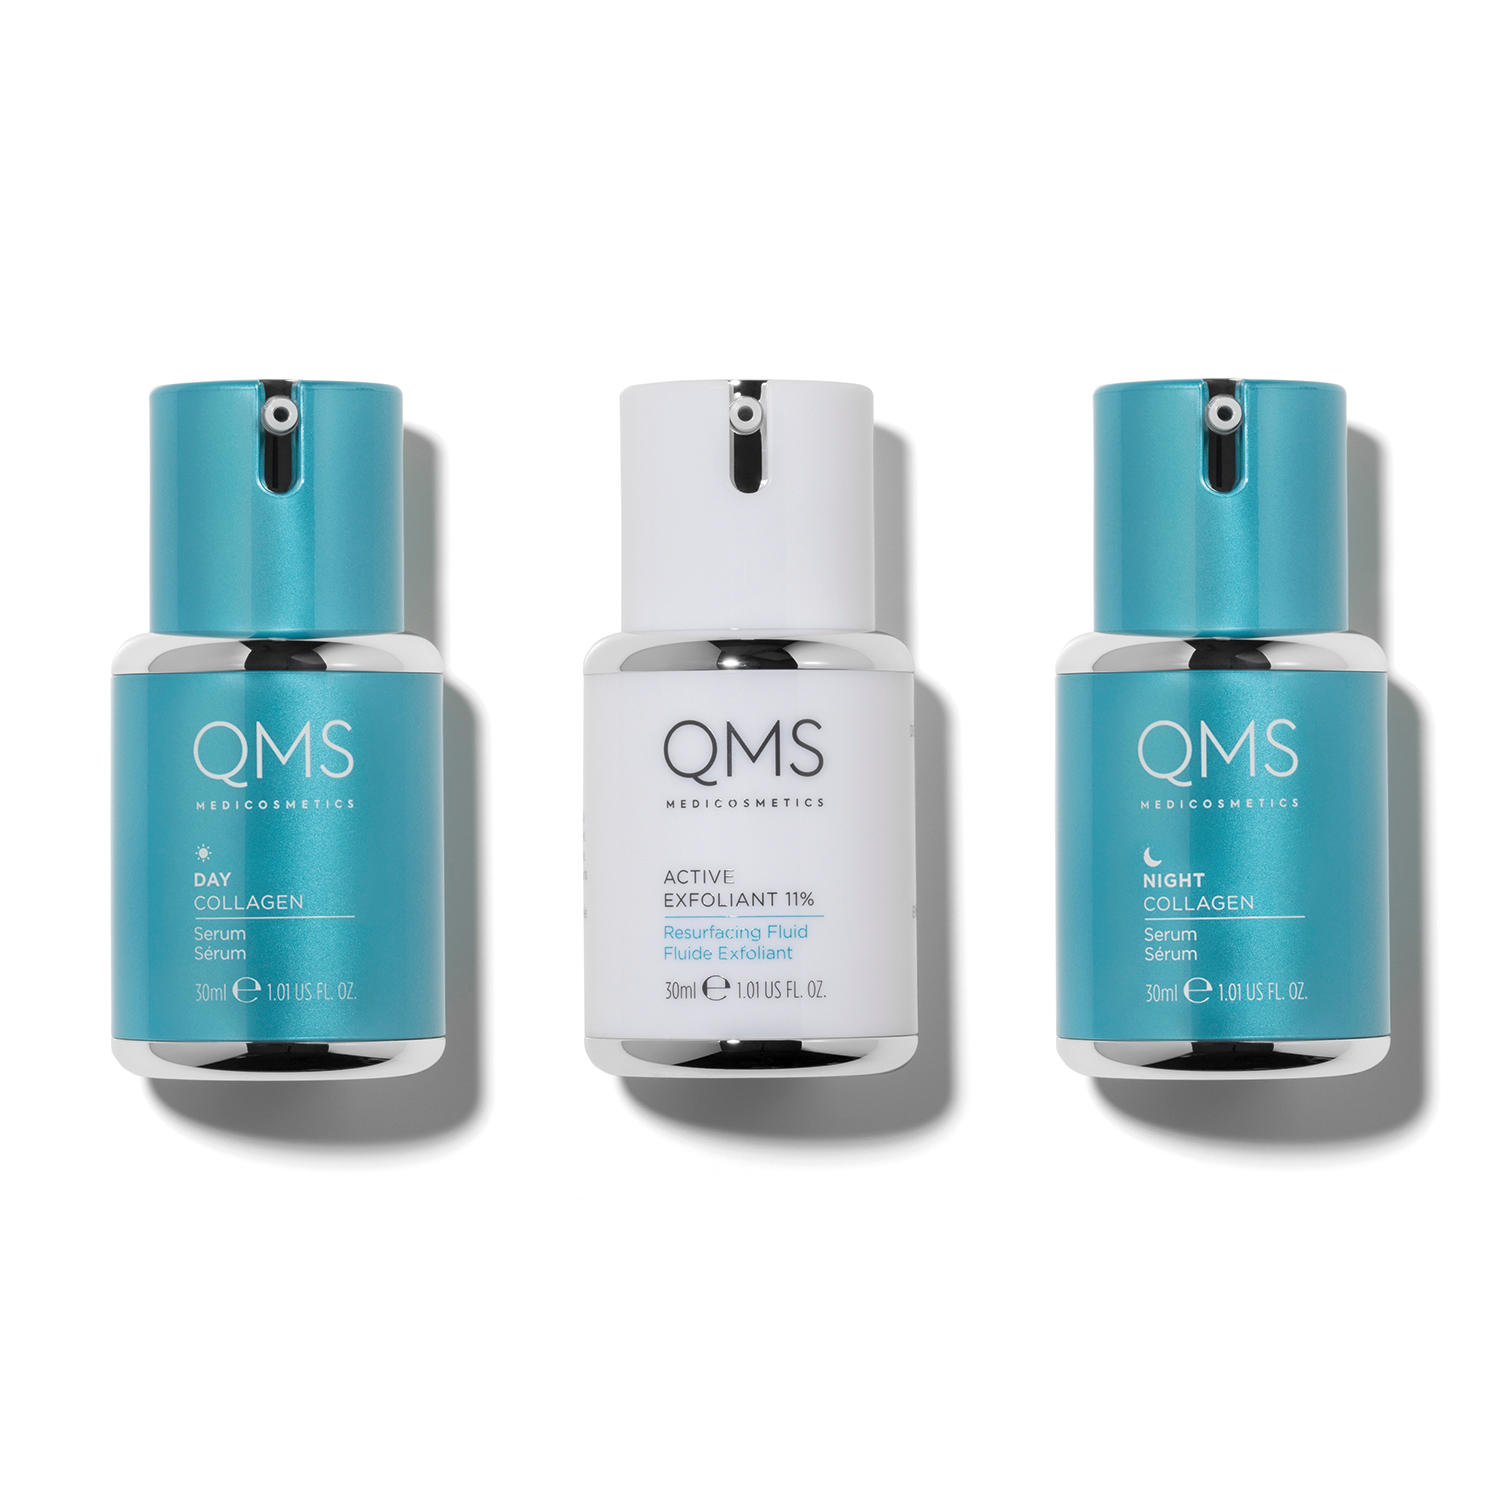 Three bottles of cosmetics with collagen forming the Collagen System range from QMS Medicosmetics